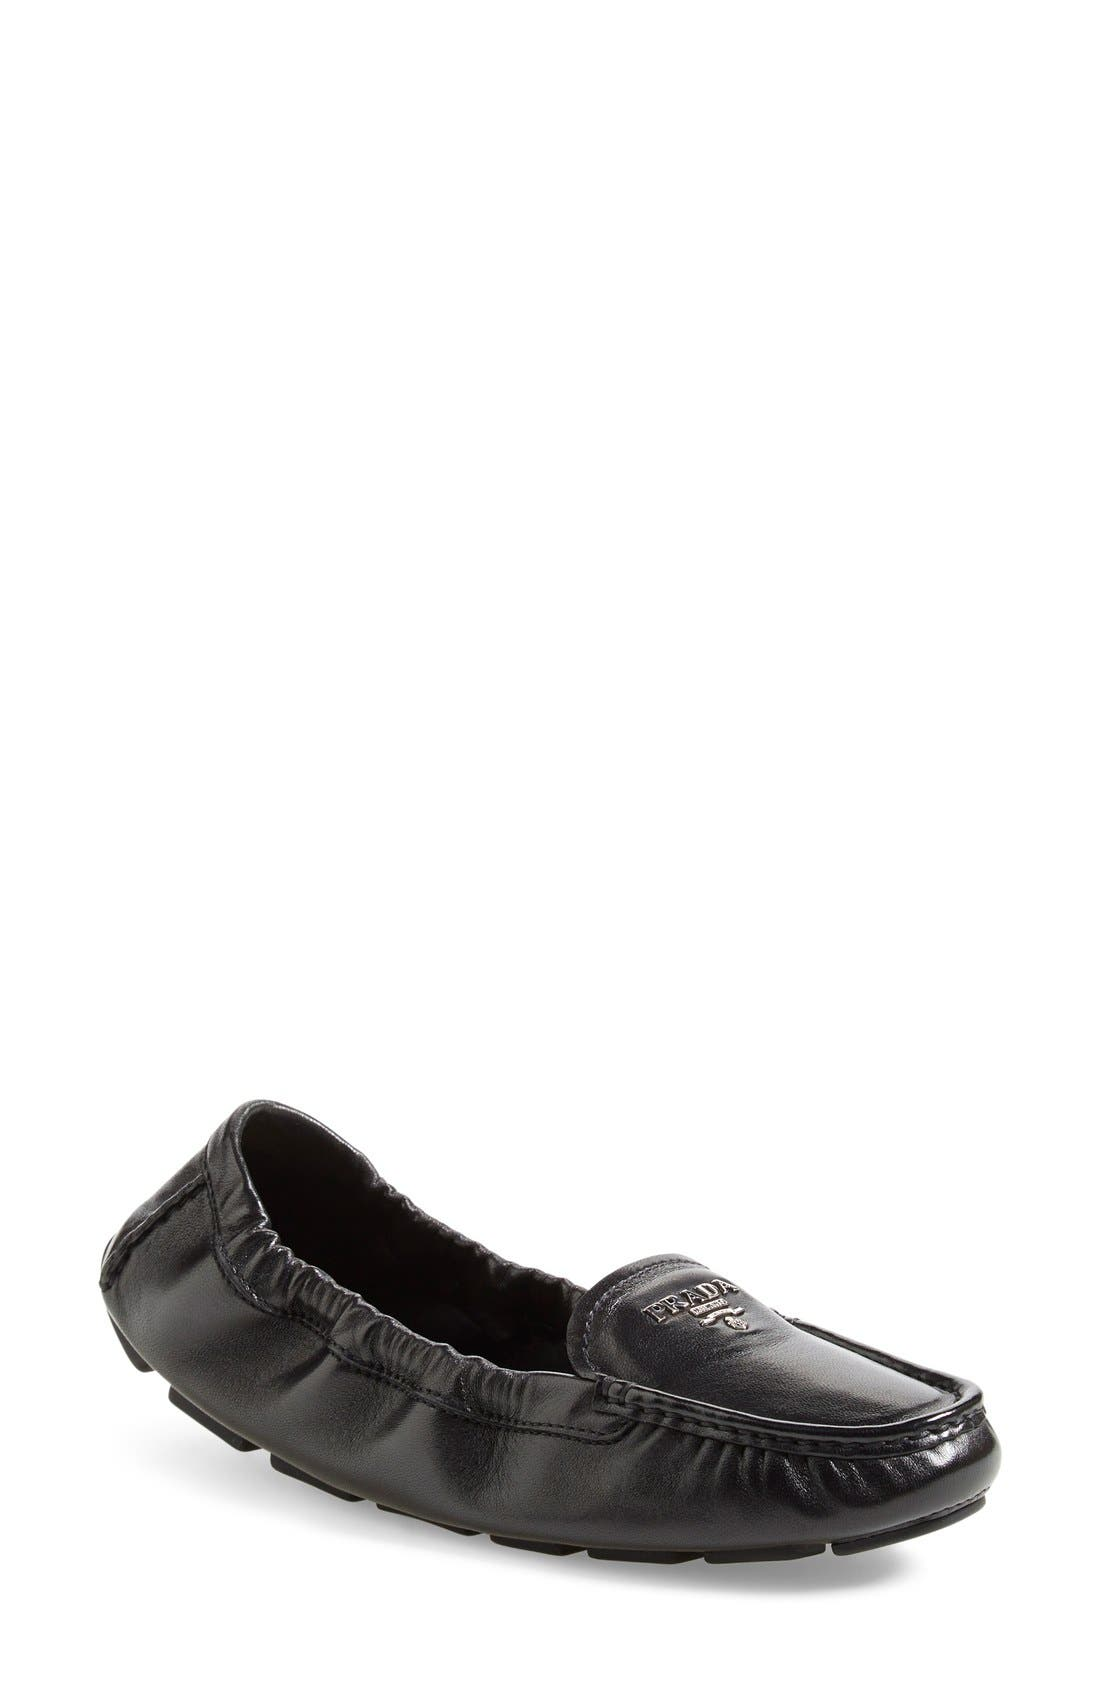 Prada 'Scrunch' Driving Loafer (Women)